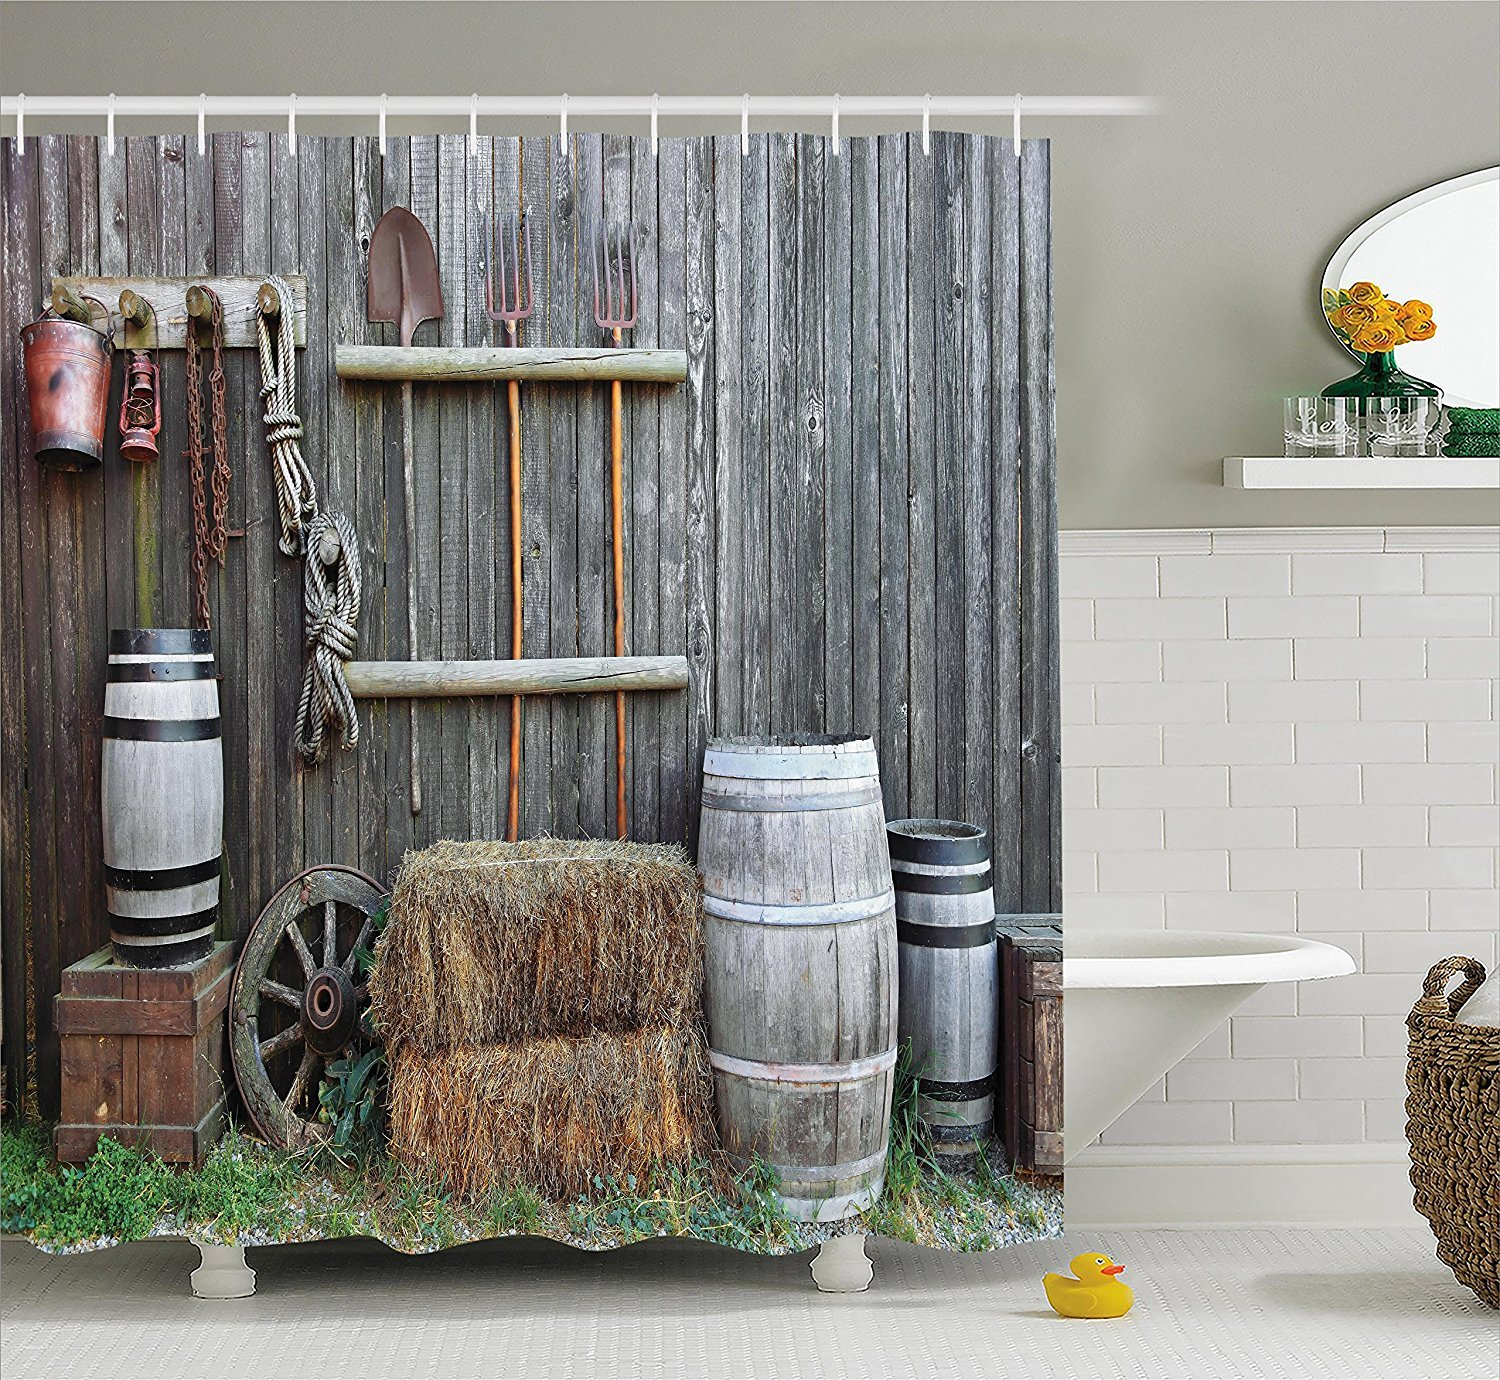 LIBIN Agriculture Shower Curtain, Western Wooden Barn Countryside Bucolic Rural House Folk Vintage Scenery, Fabric Bathroom Decor Set with Hooks, Grey Light Brown